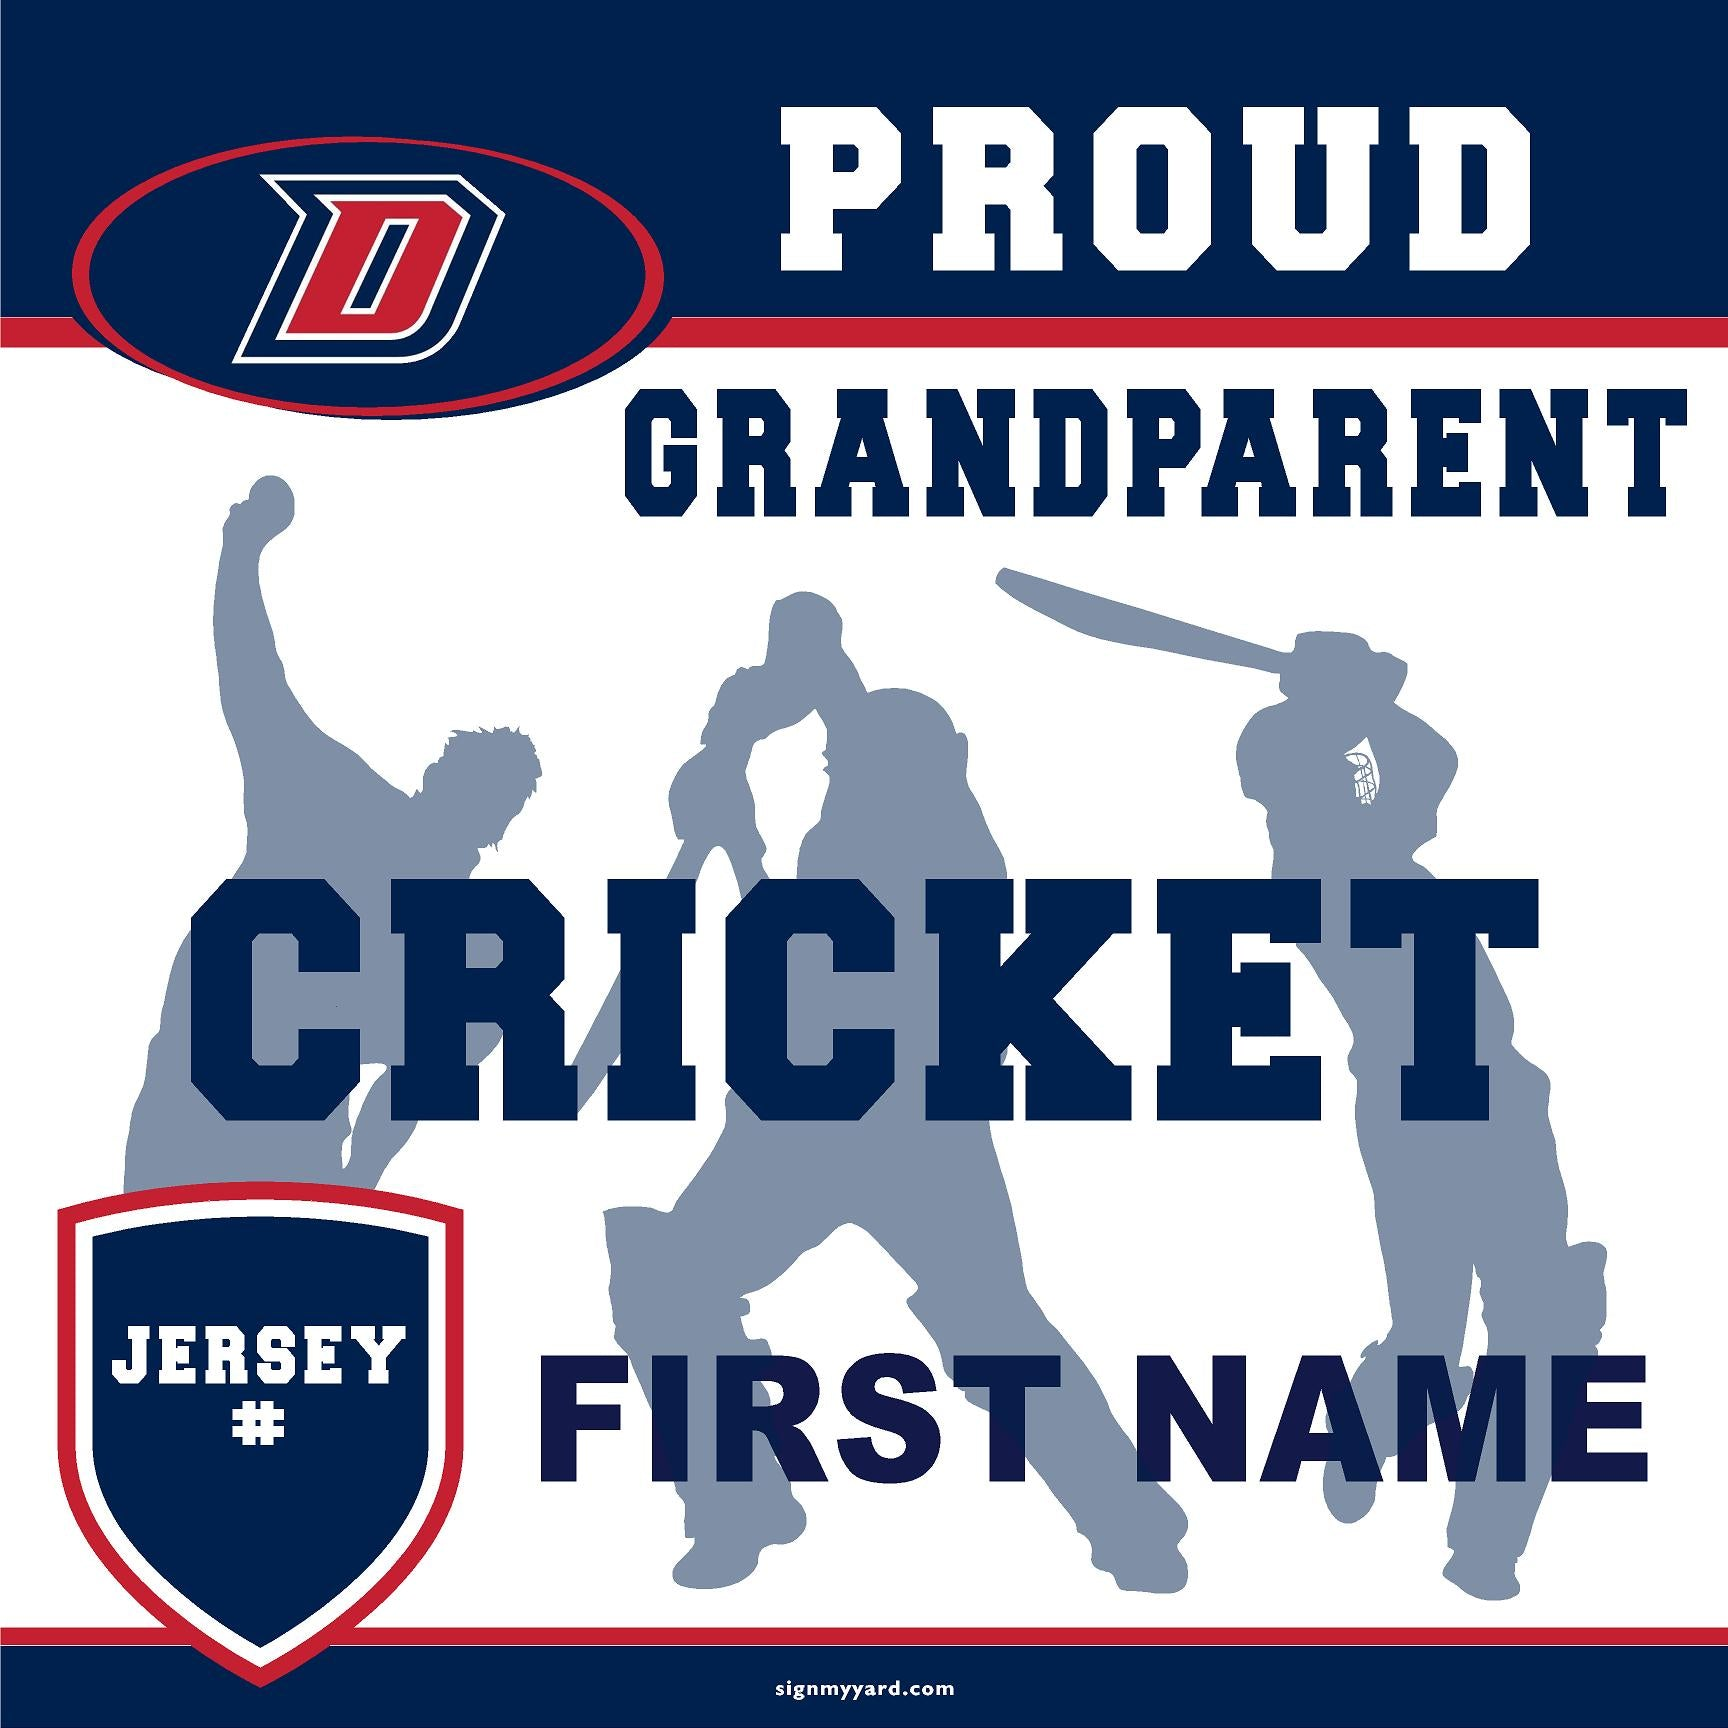 Dublin High School Cricket (Grandparent with Jersey #) 24x24 Yard Sign (includes installation in your yard)